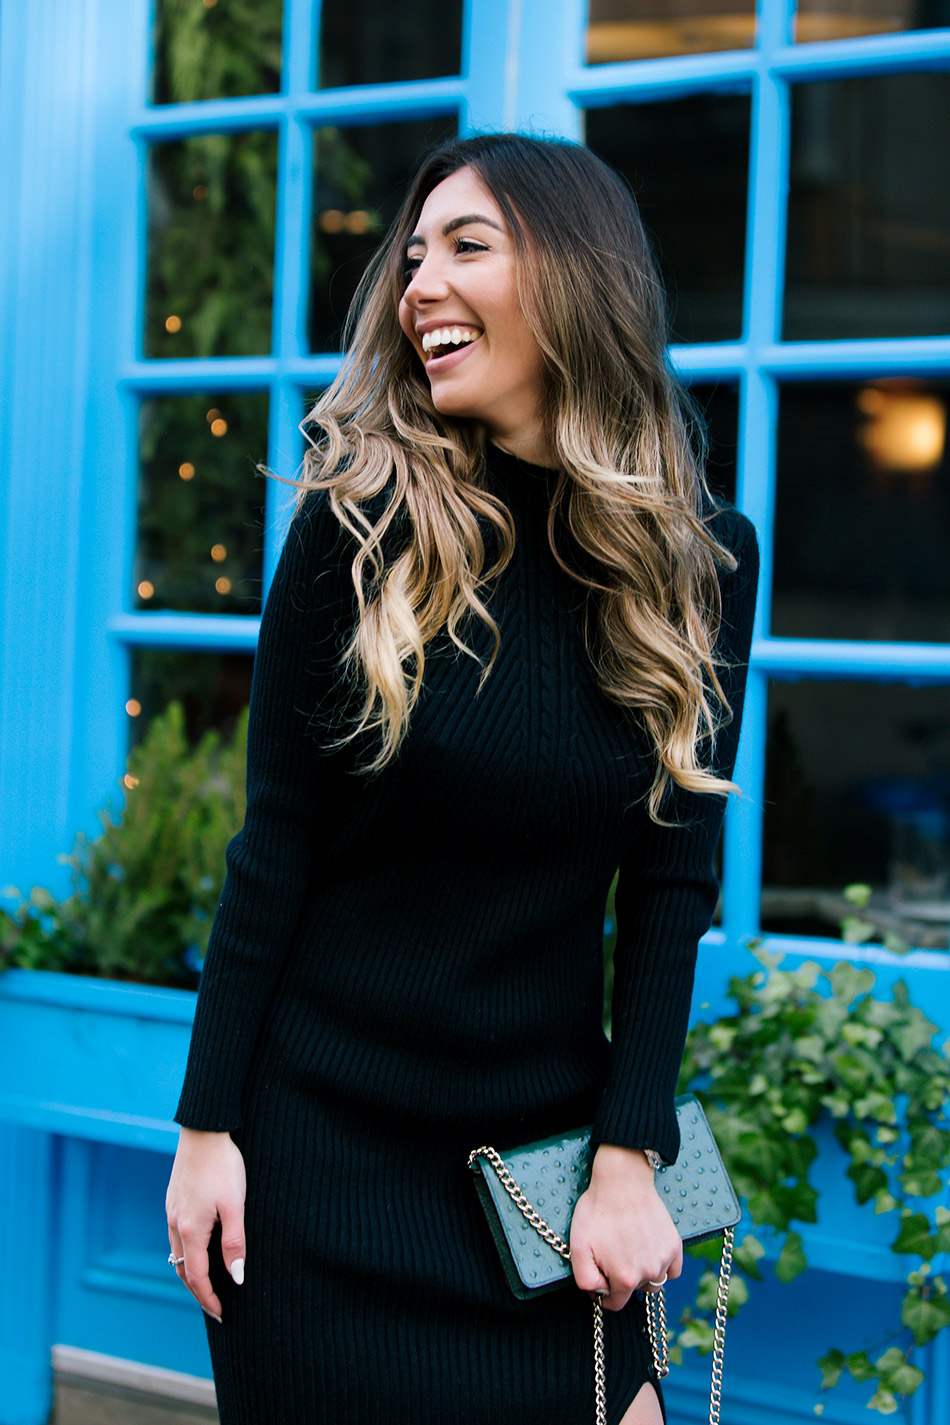 Ombre blonde blogger in a black dress from SammyDress and green Kate Spade bag.